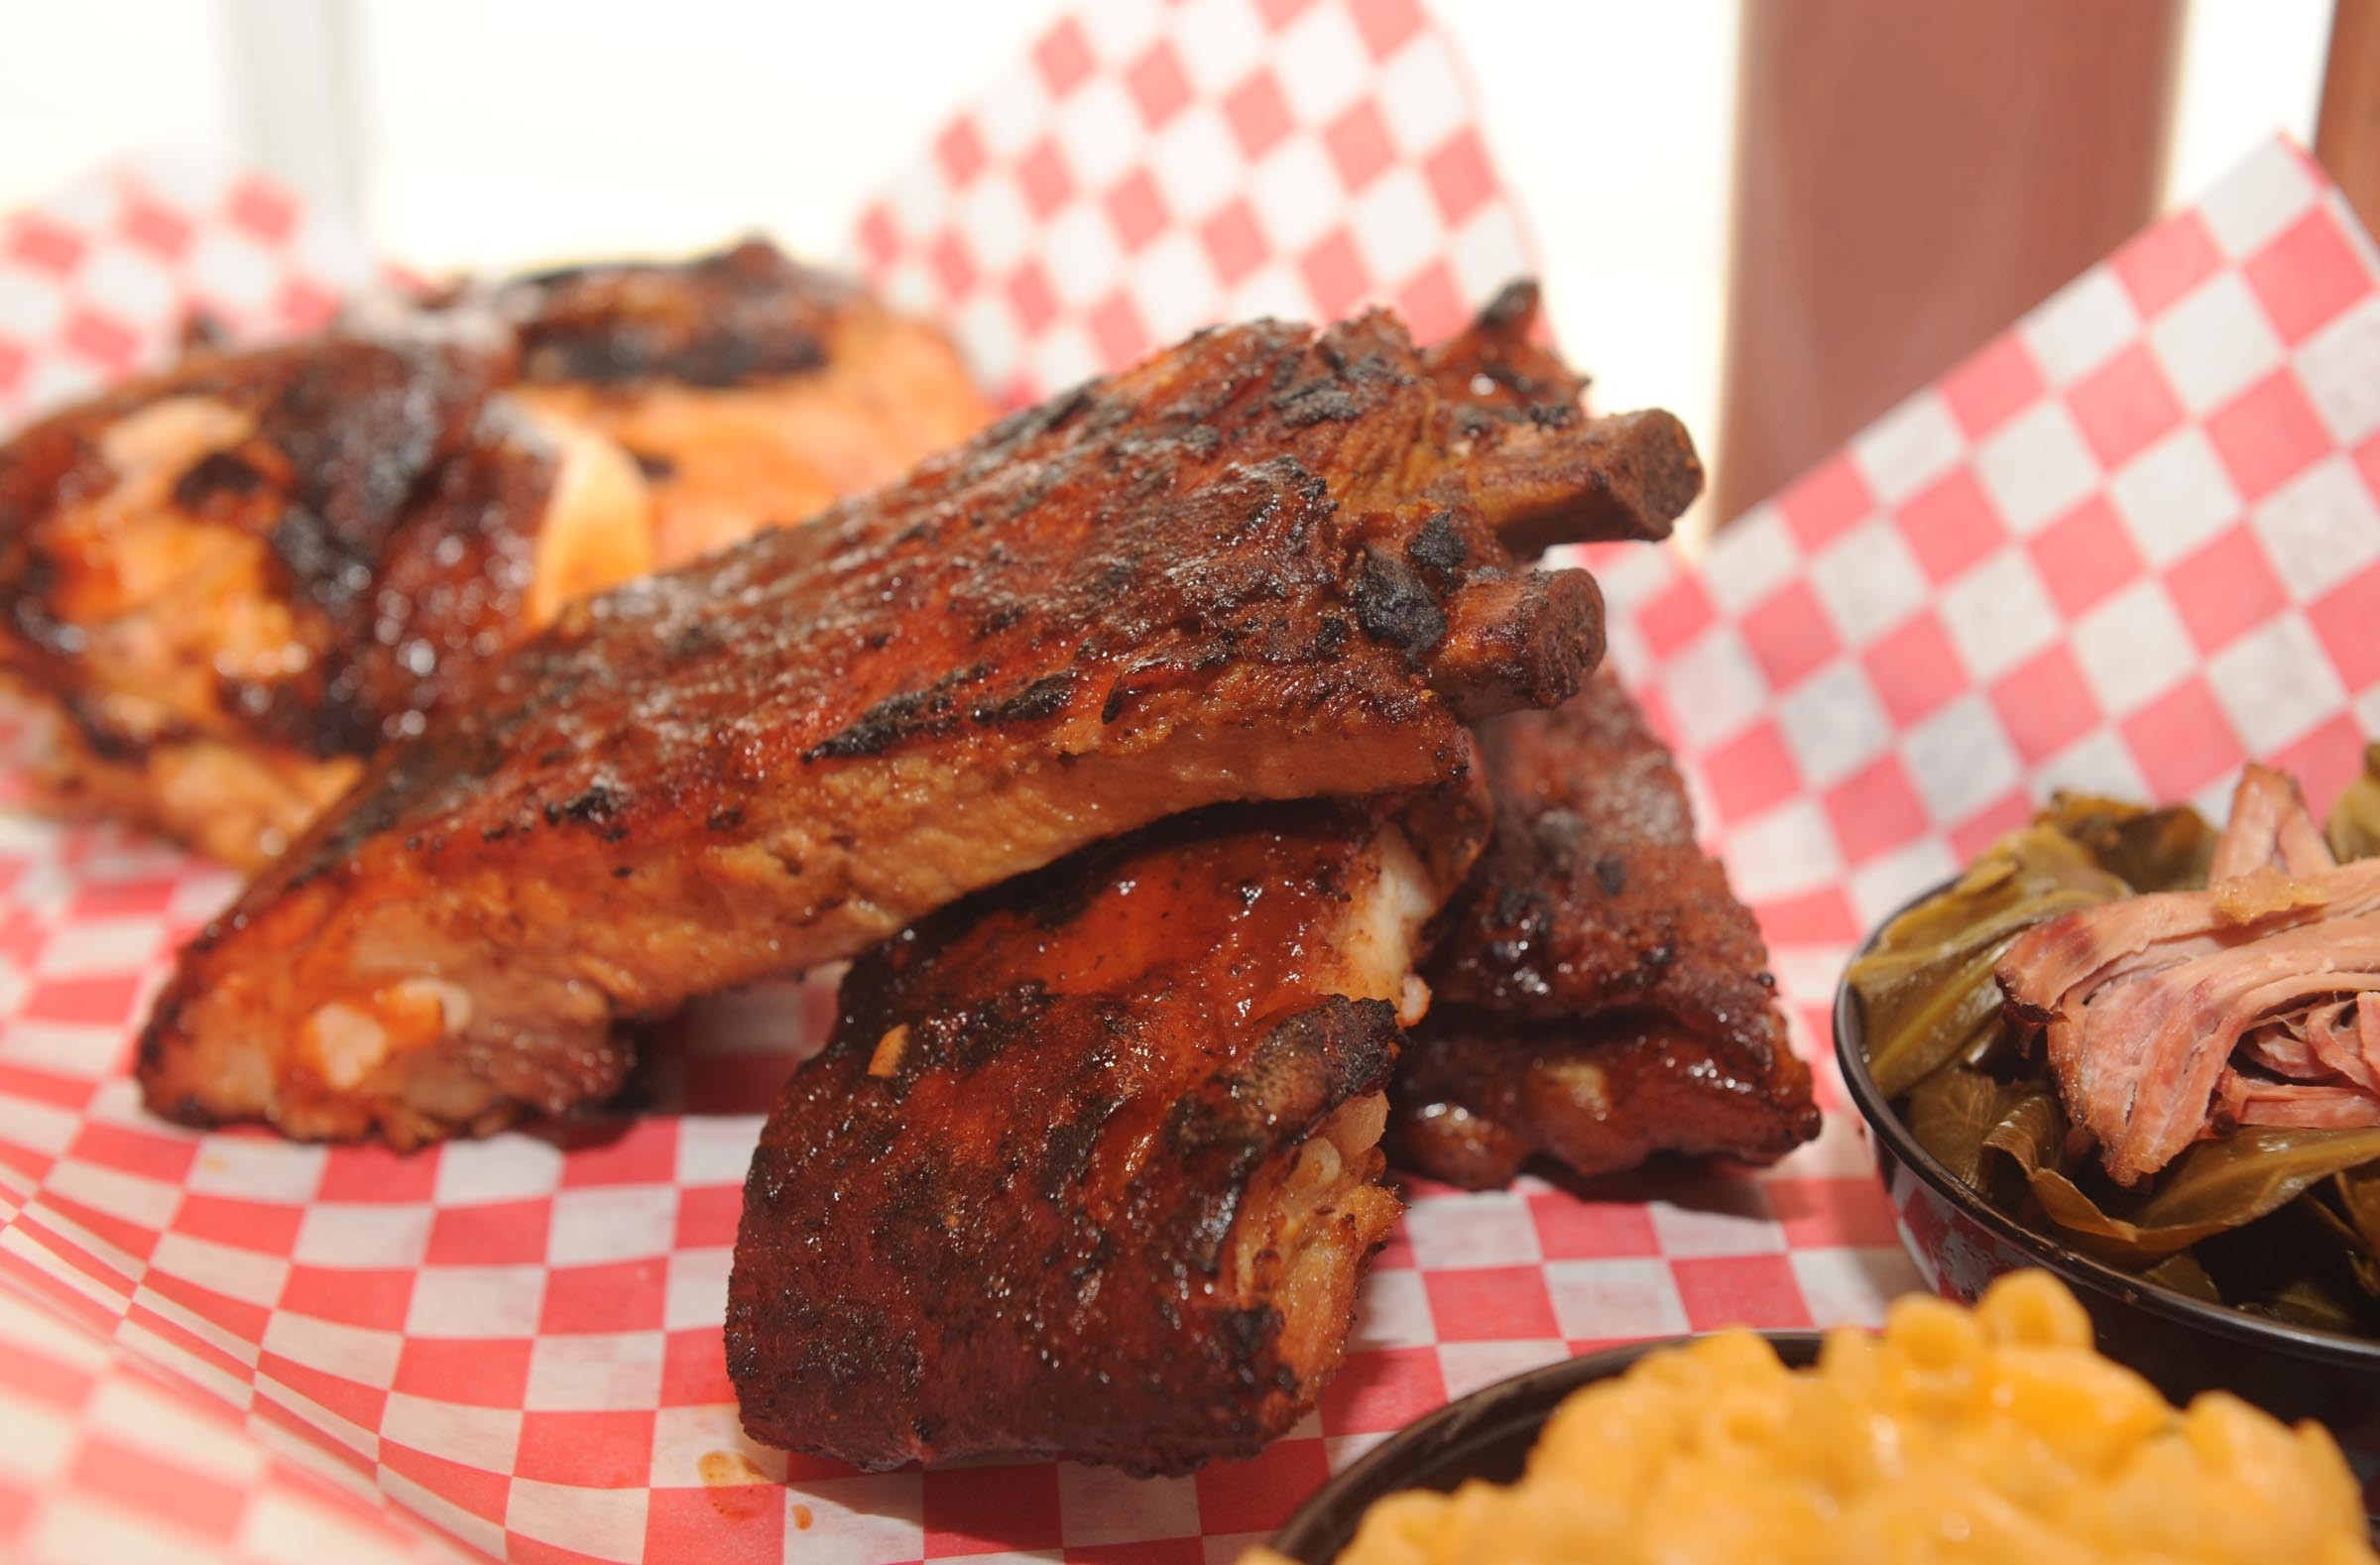 The sparerib platter at Deep Run Roadhouse comes with two sides, here greens and mac and cheese. - SCOTT ELMQUIST